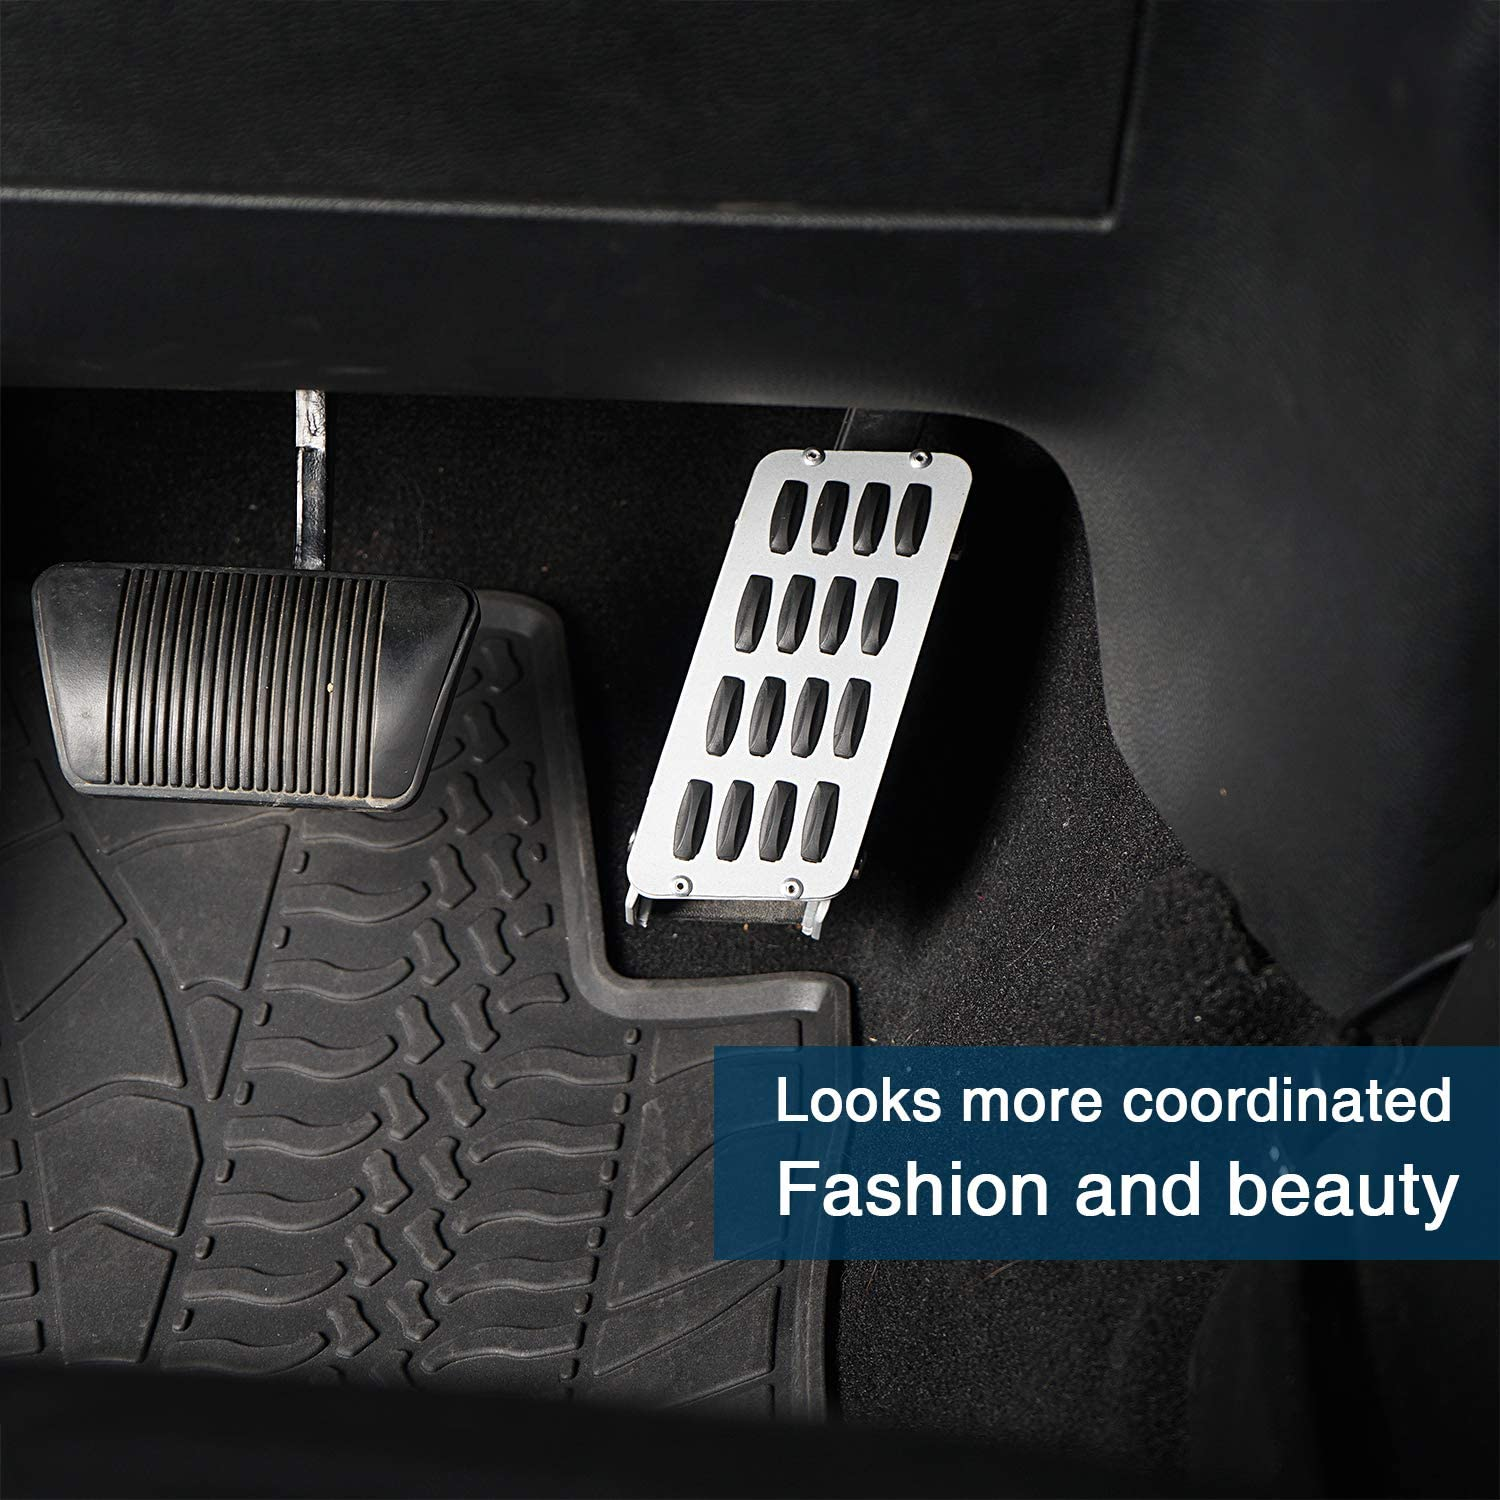 Kutang Modified Gas Pedal Extender Cover Adjustable Driver Foot Rest Pad for 2007-2018 Jeep Wrangler JK /& Unlimited